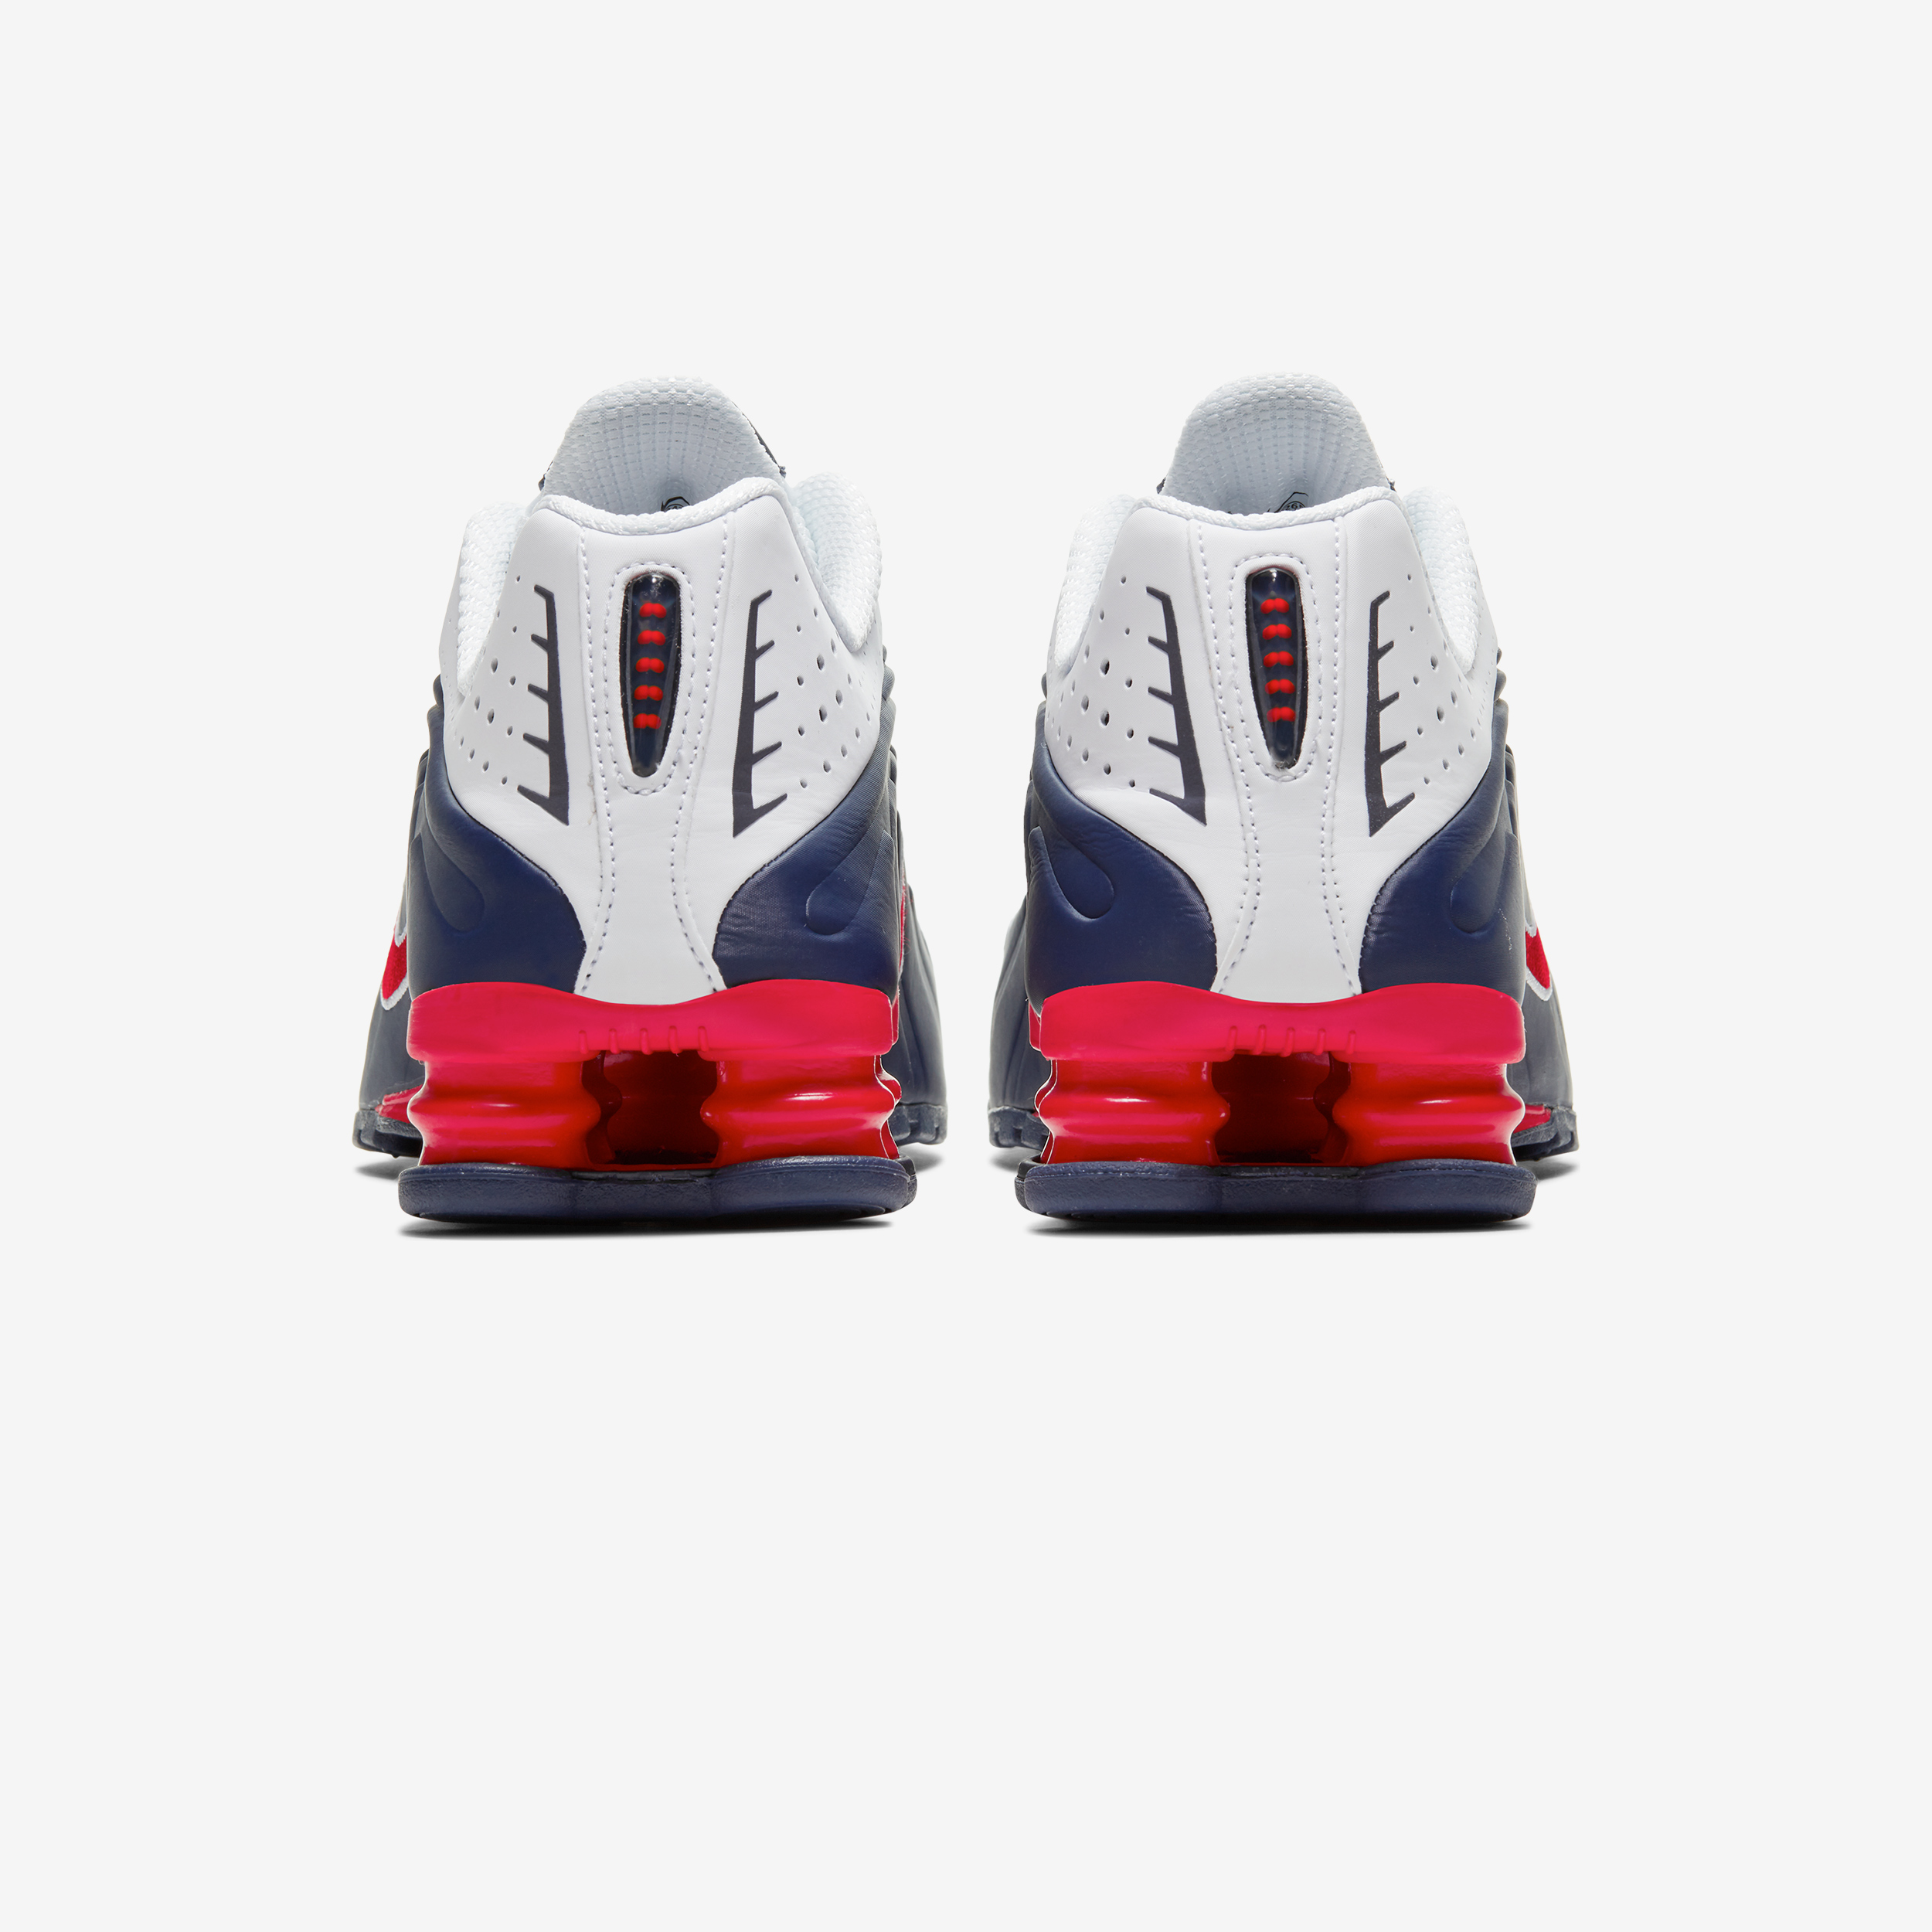 Nike Shox R4 USA Navy Red White Men Running Shoes Sneakers 104265-406